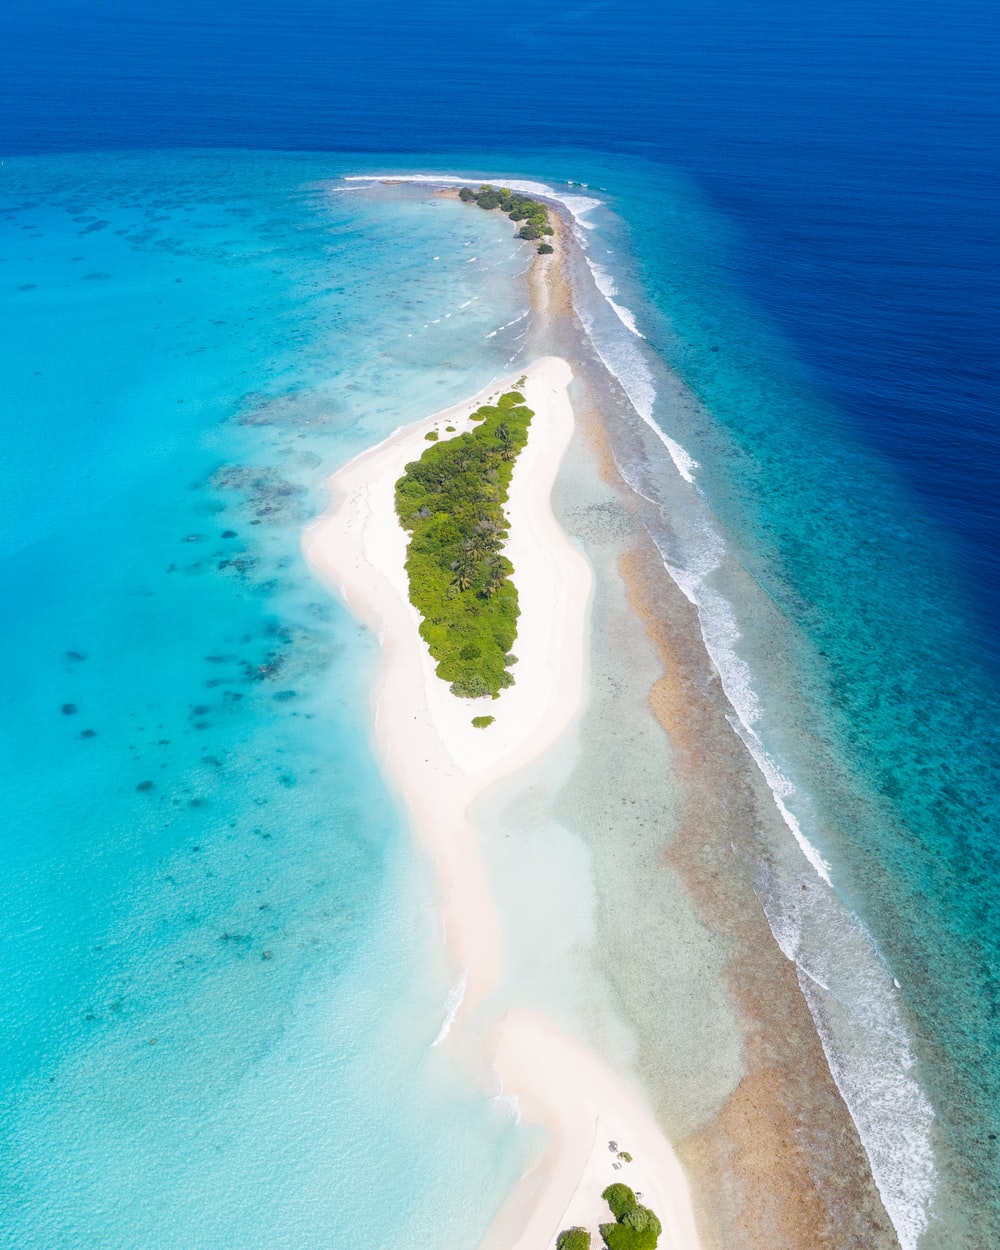 aerial view of green trees on brown sand beach during daytime